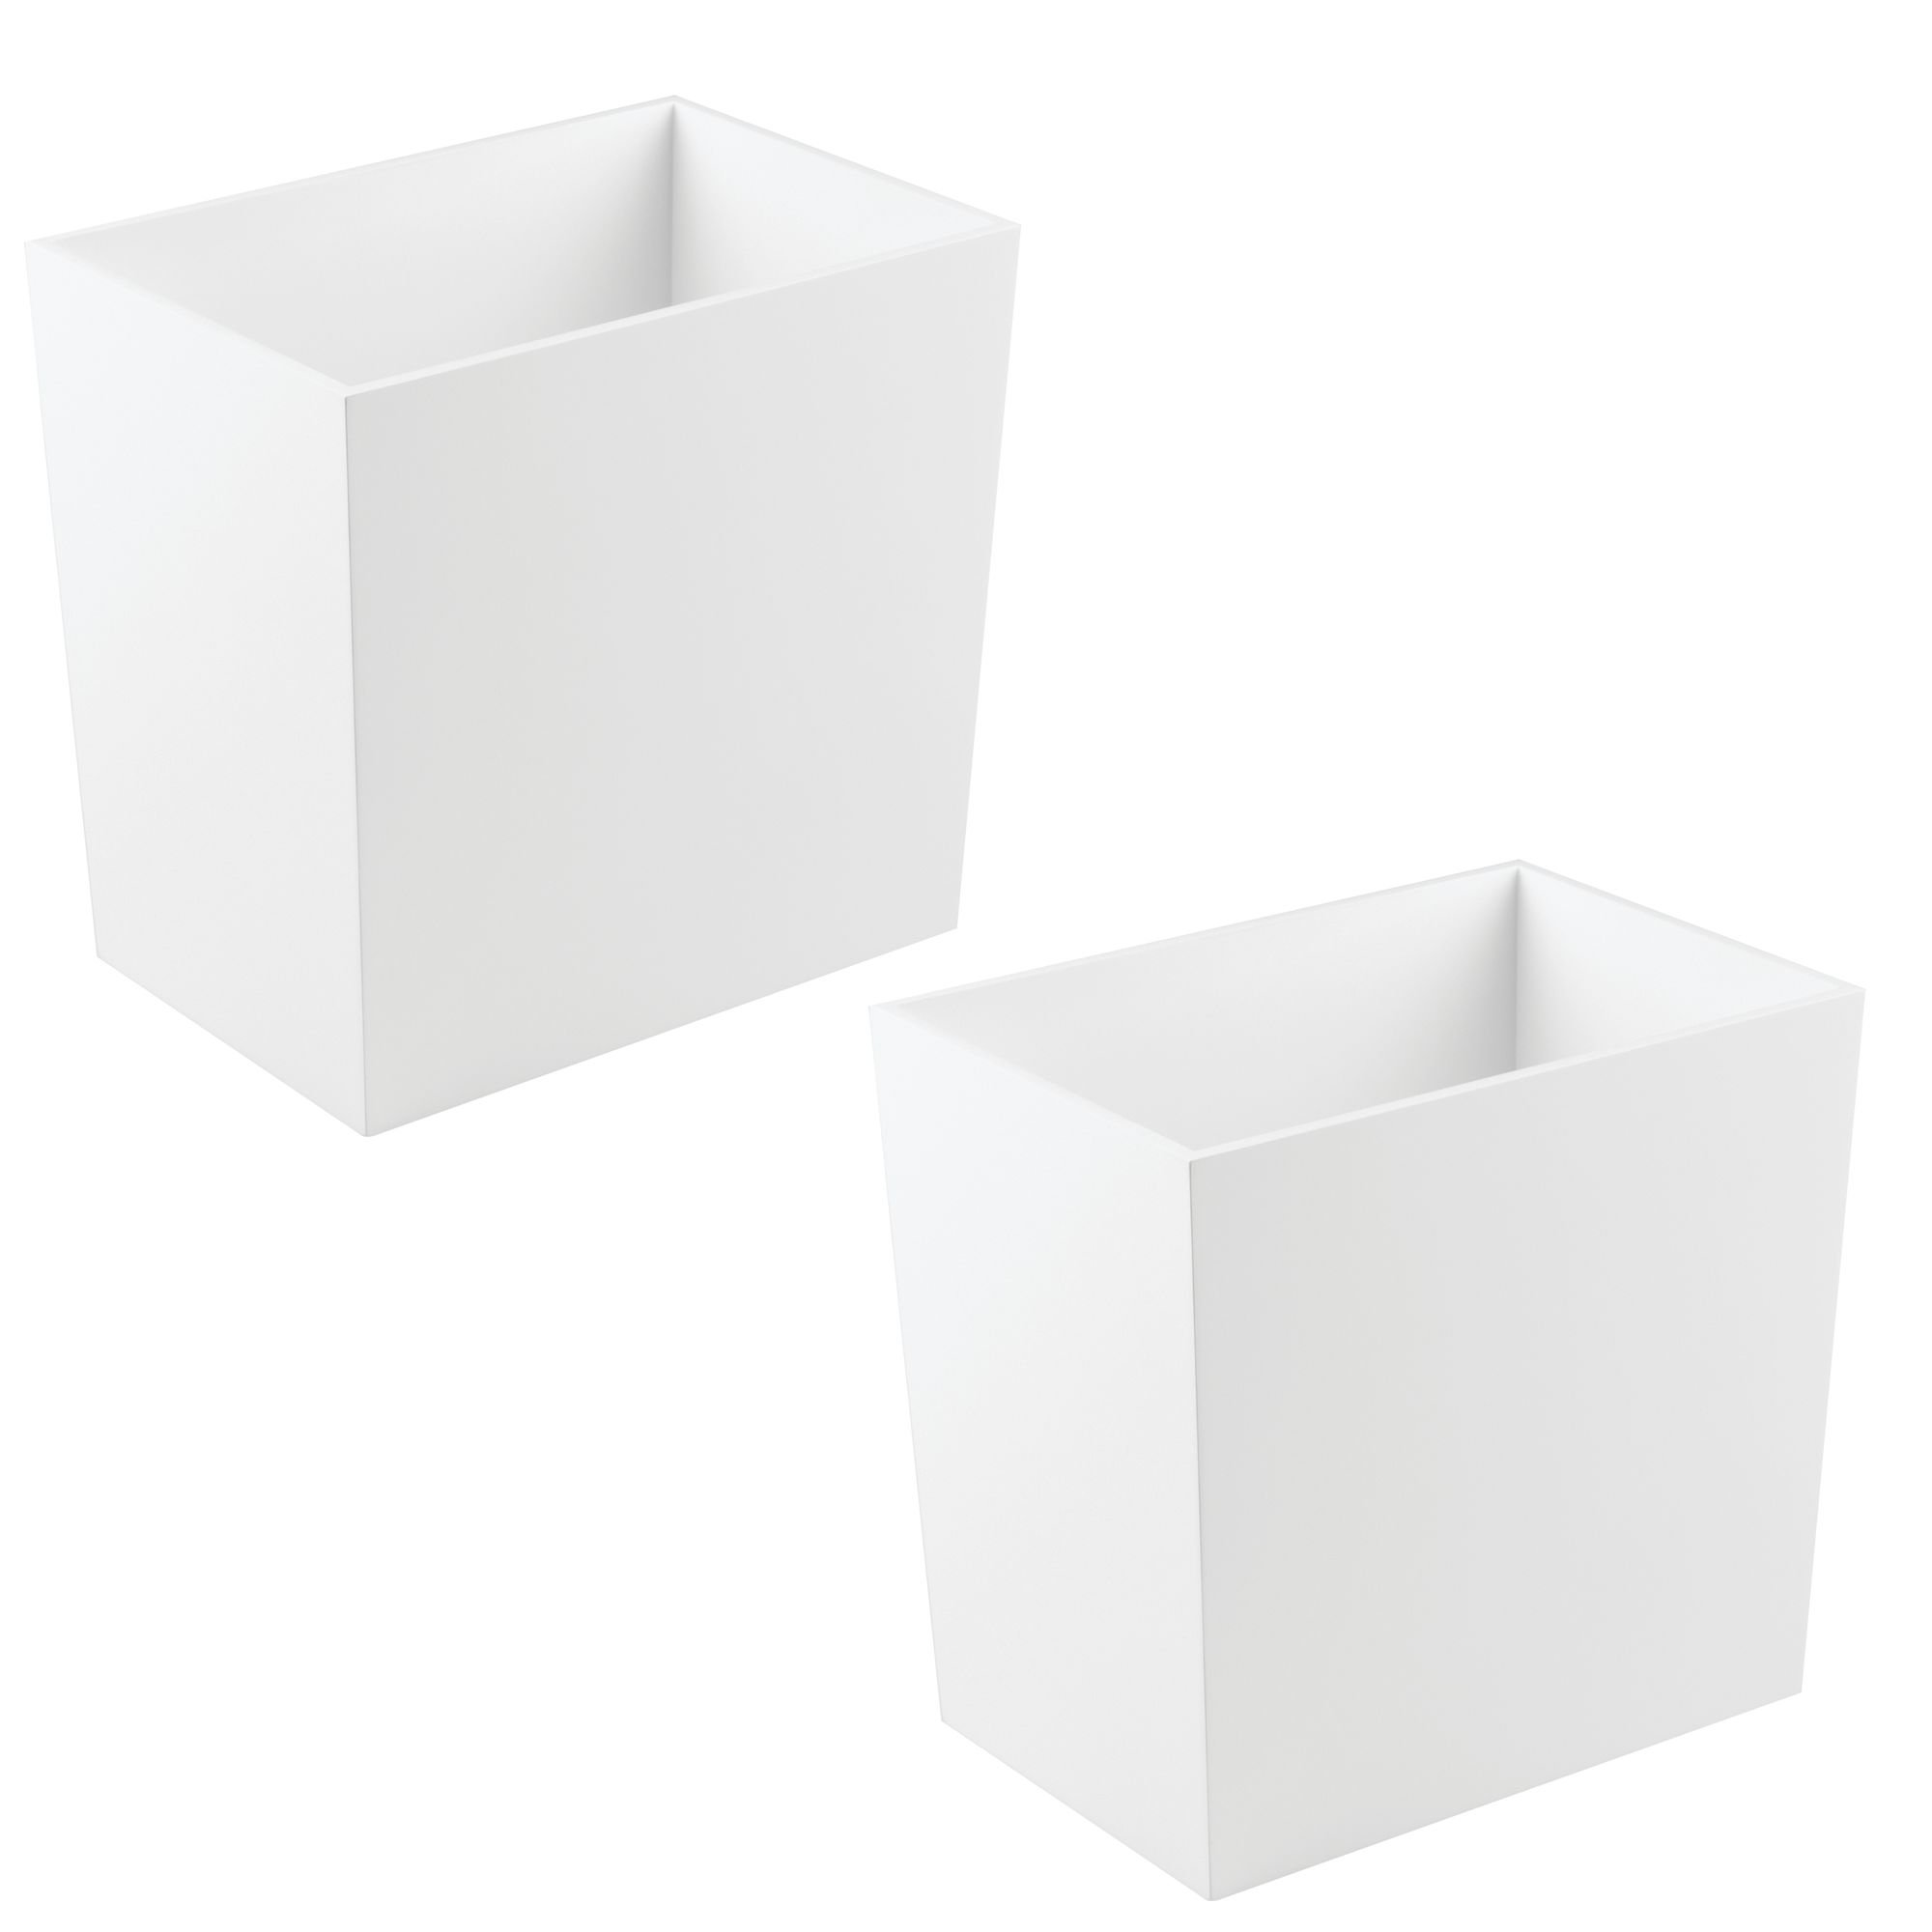 mDesign Rectangular Narrow Wood Trash Can Wastebasket, Small Garbage Container Bin for Bathrooms, Kitchens, Home Offices, Craft Rooms - 2 Pack - White